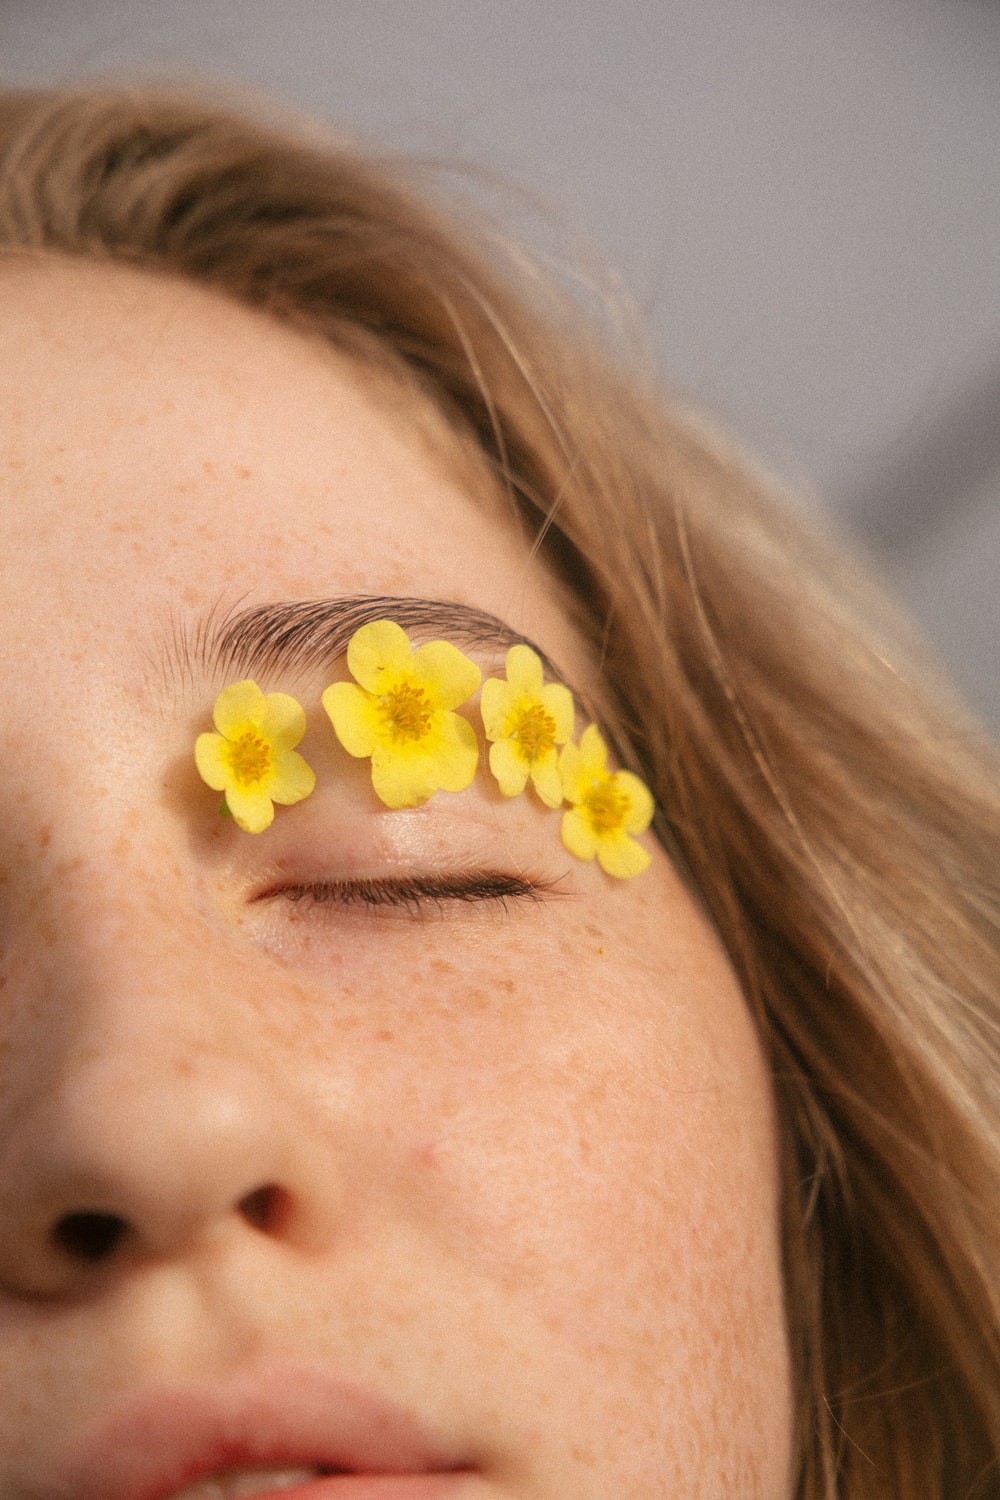 woman with yellow flower on her ear